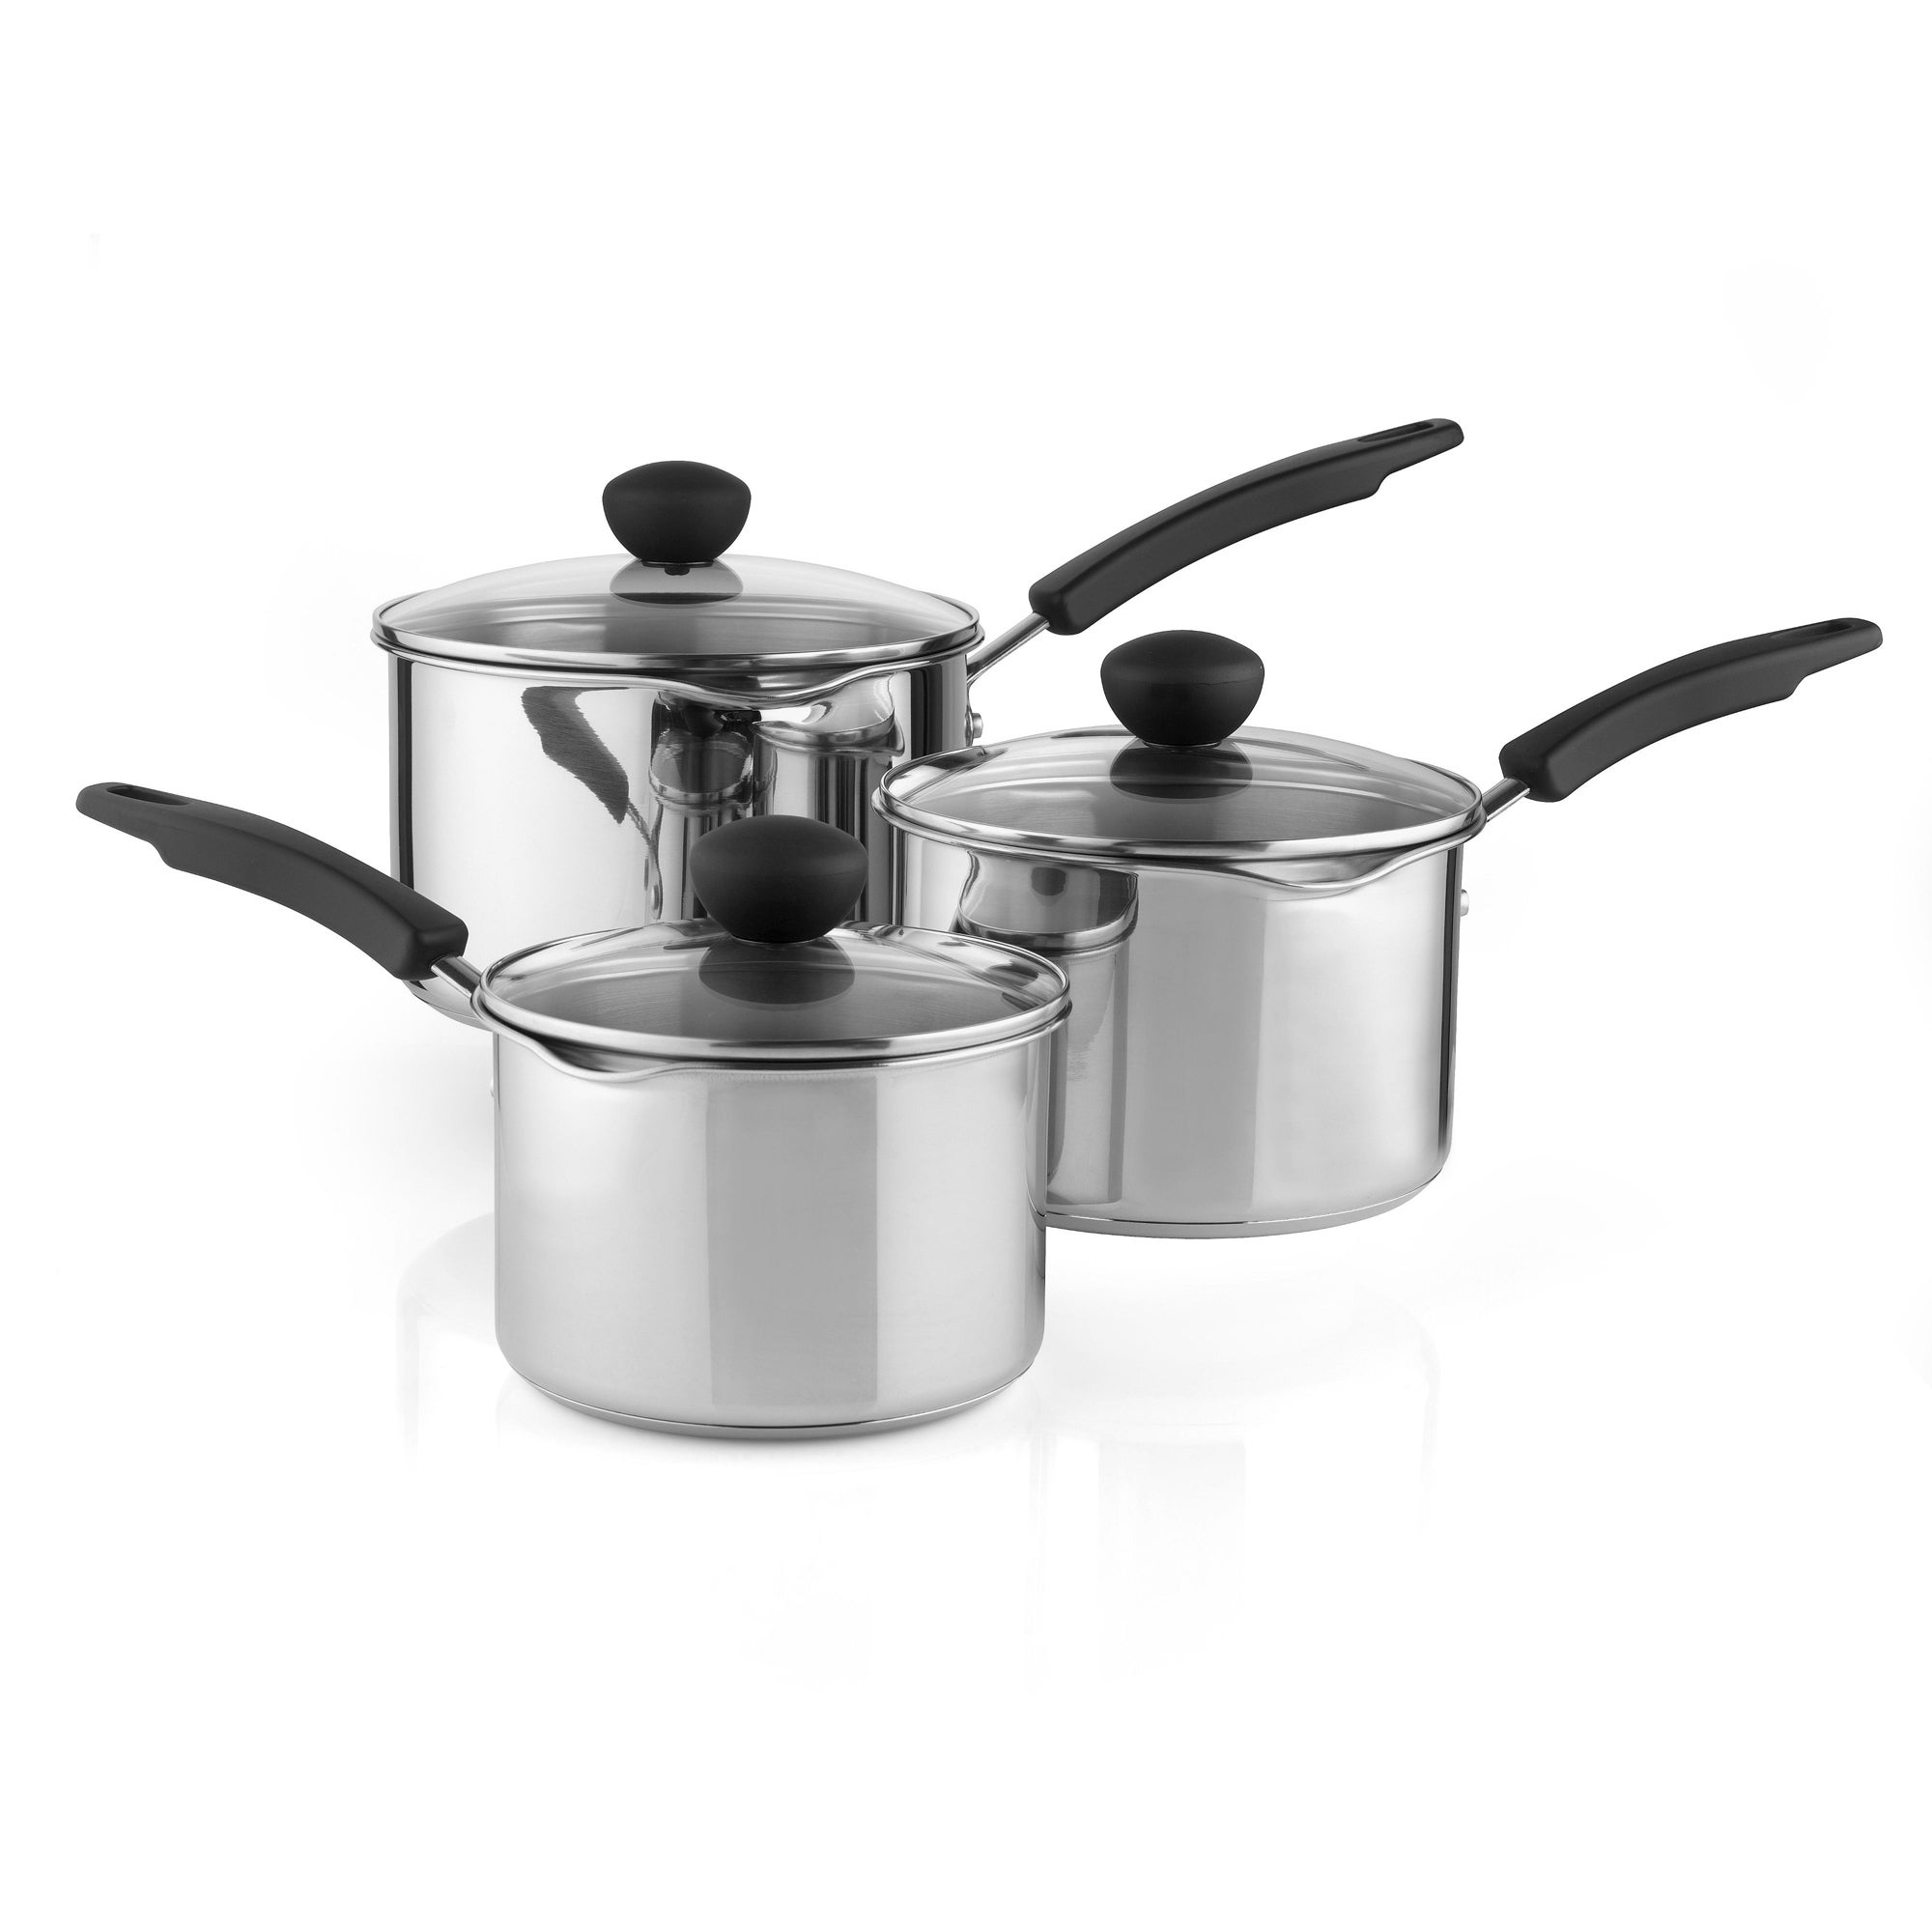 Stainless Steel Set of 3 Saucepans